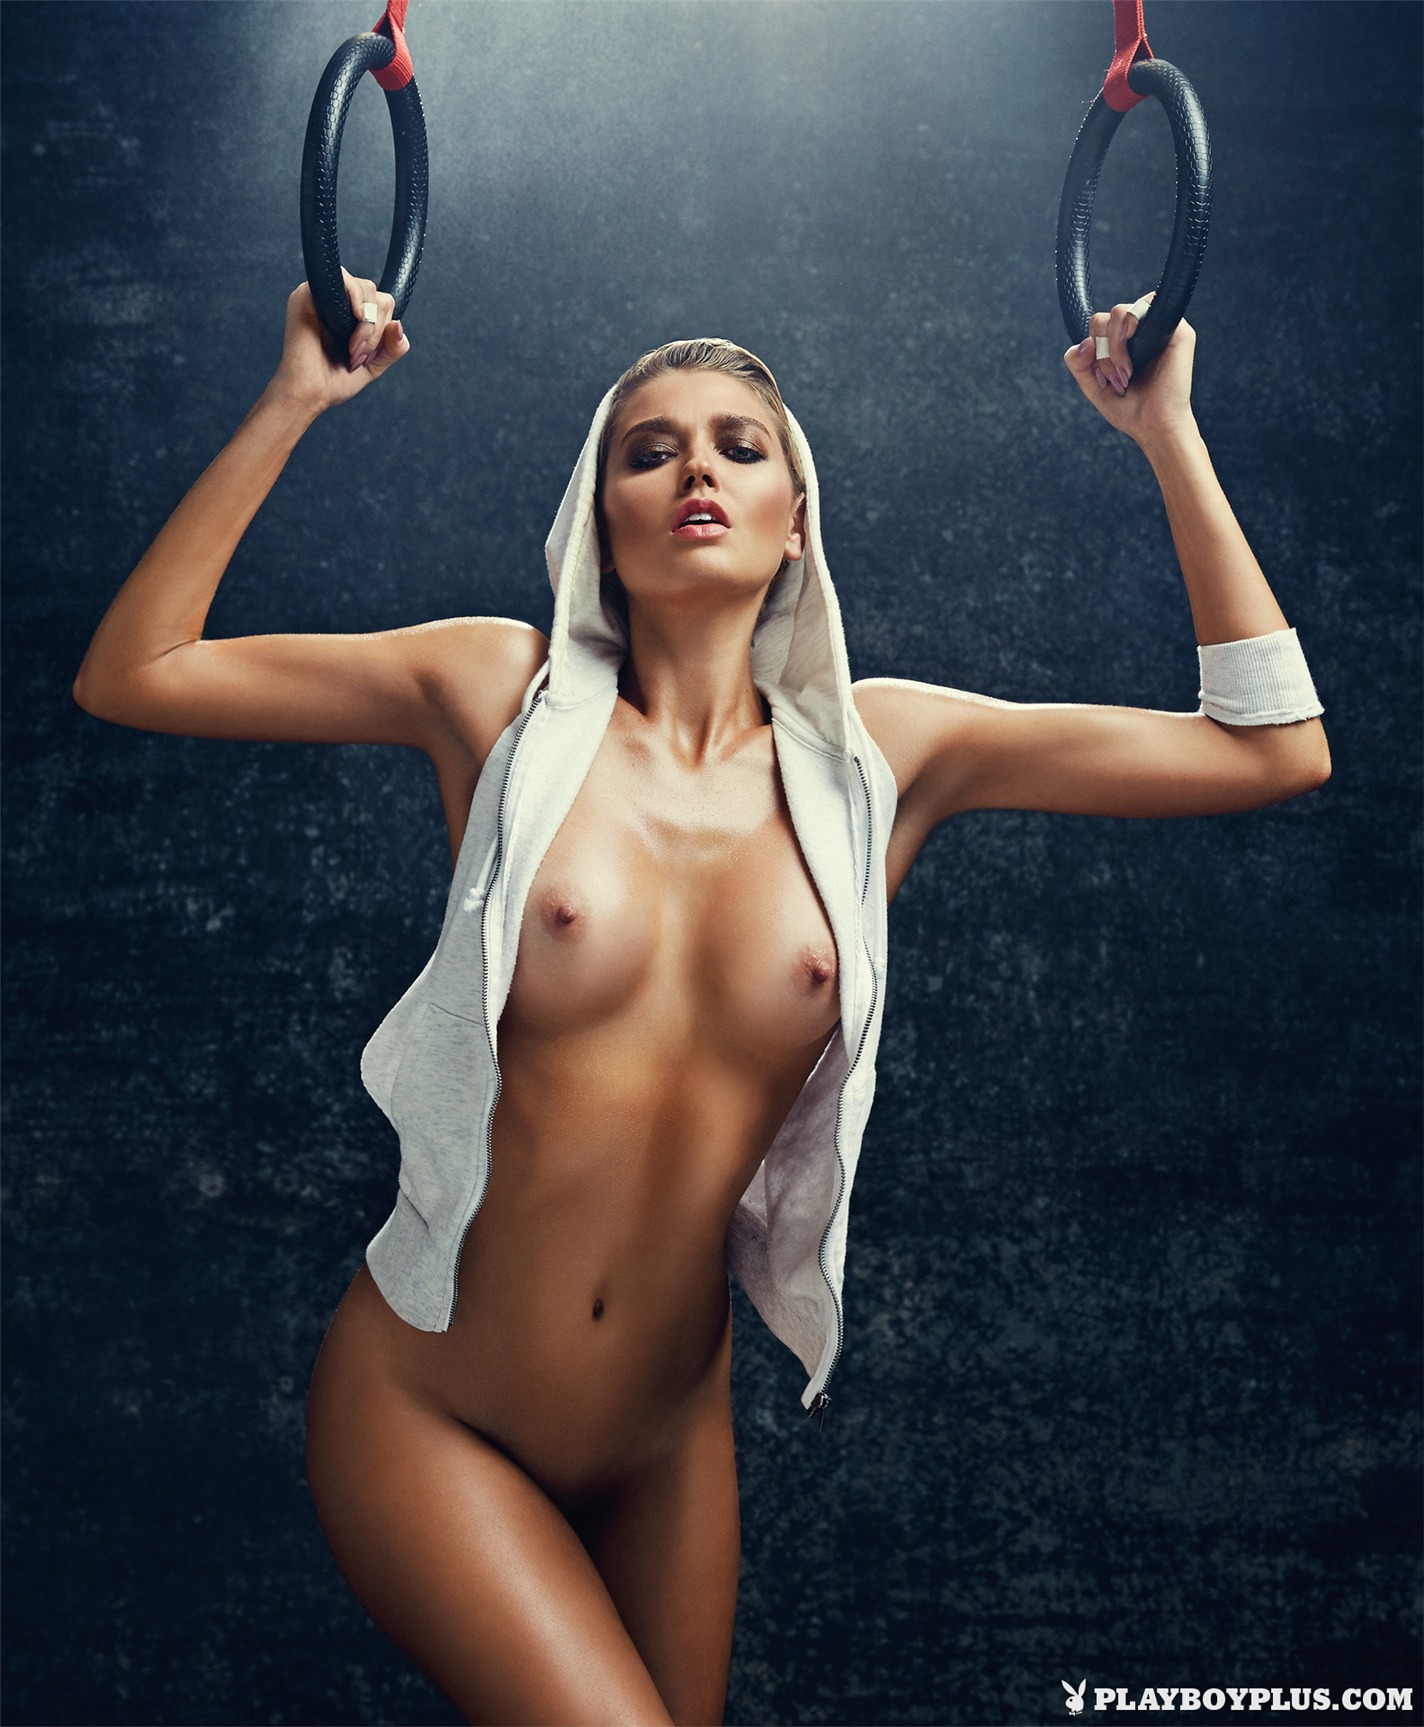 Хизер Деприст / Heather Depriest nude by Josh Ryan - Playboy US september 2015